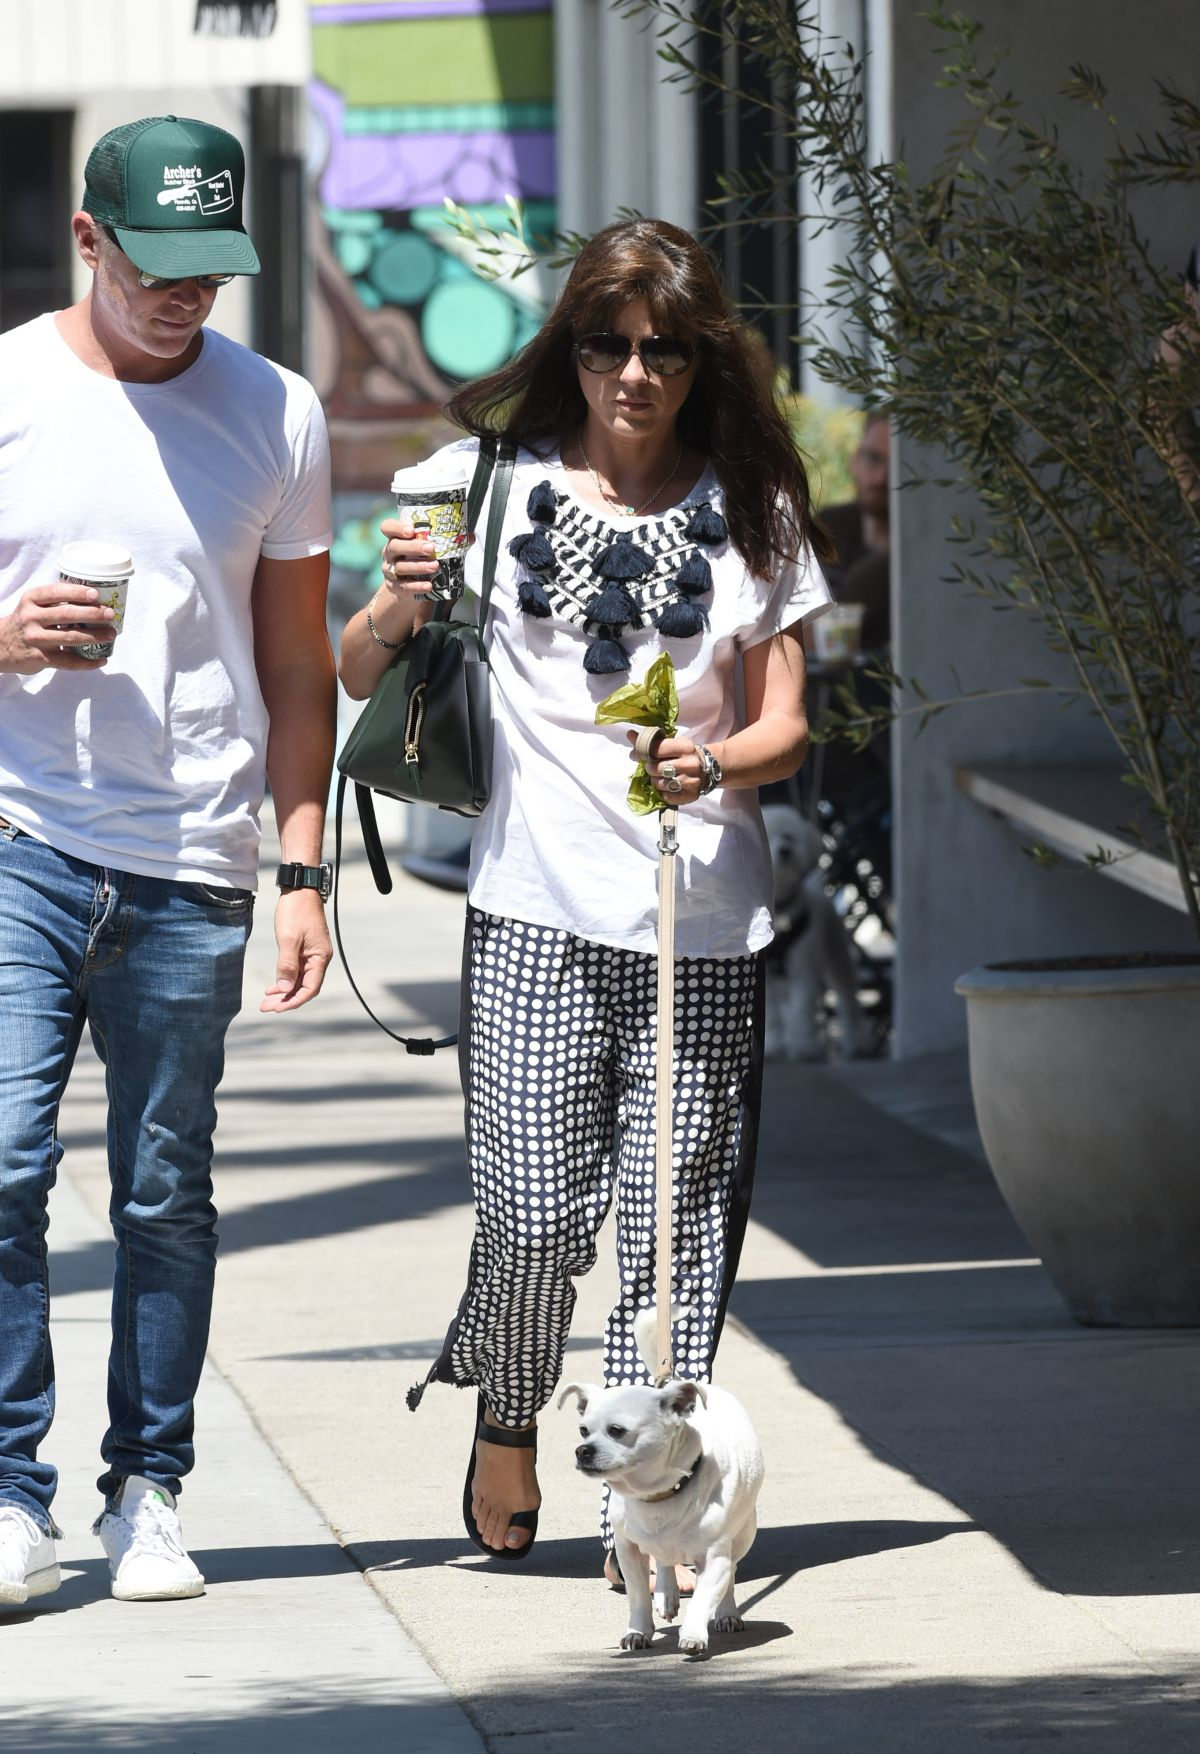 Selma Blair Out with her dog in LA   selma-blair-out-with-her-dog-in-la-_2